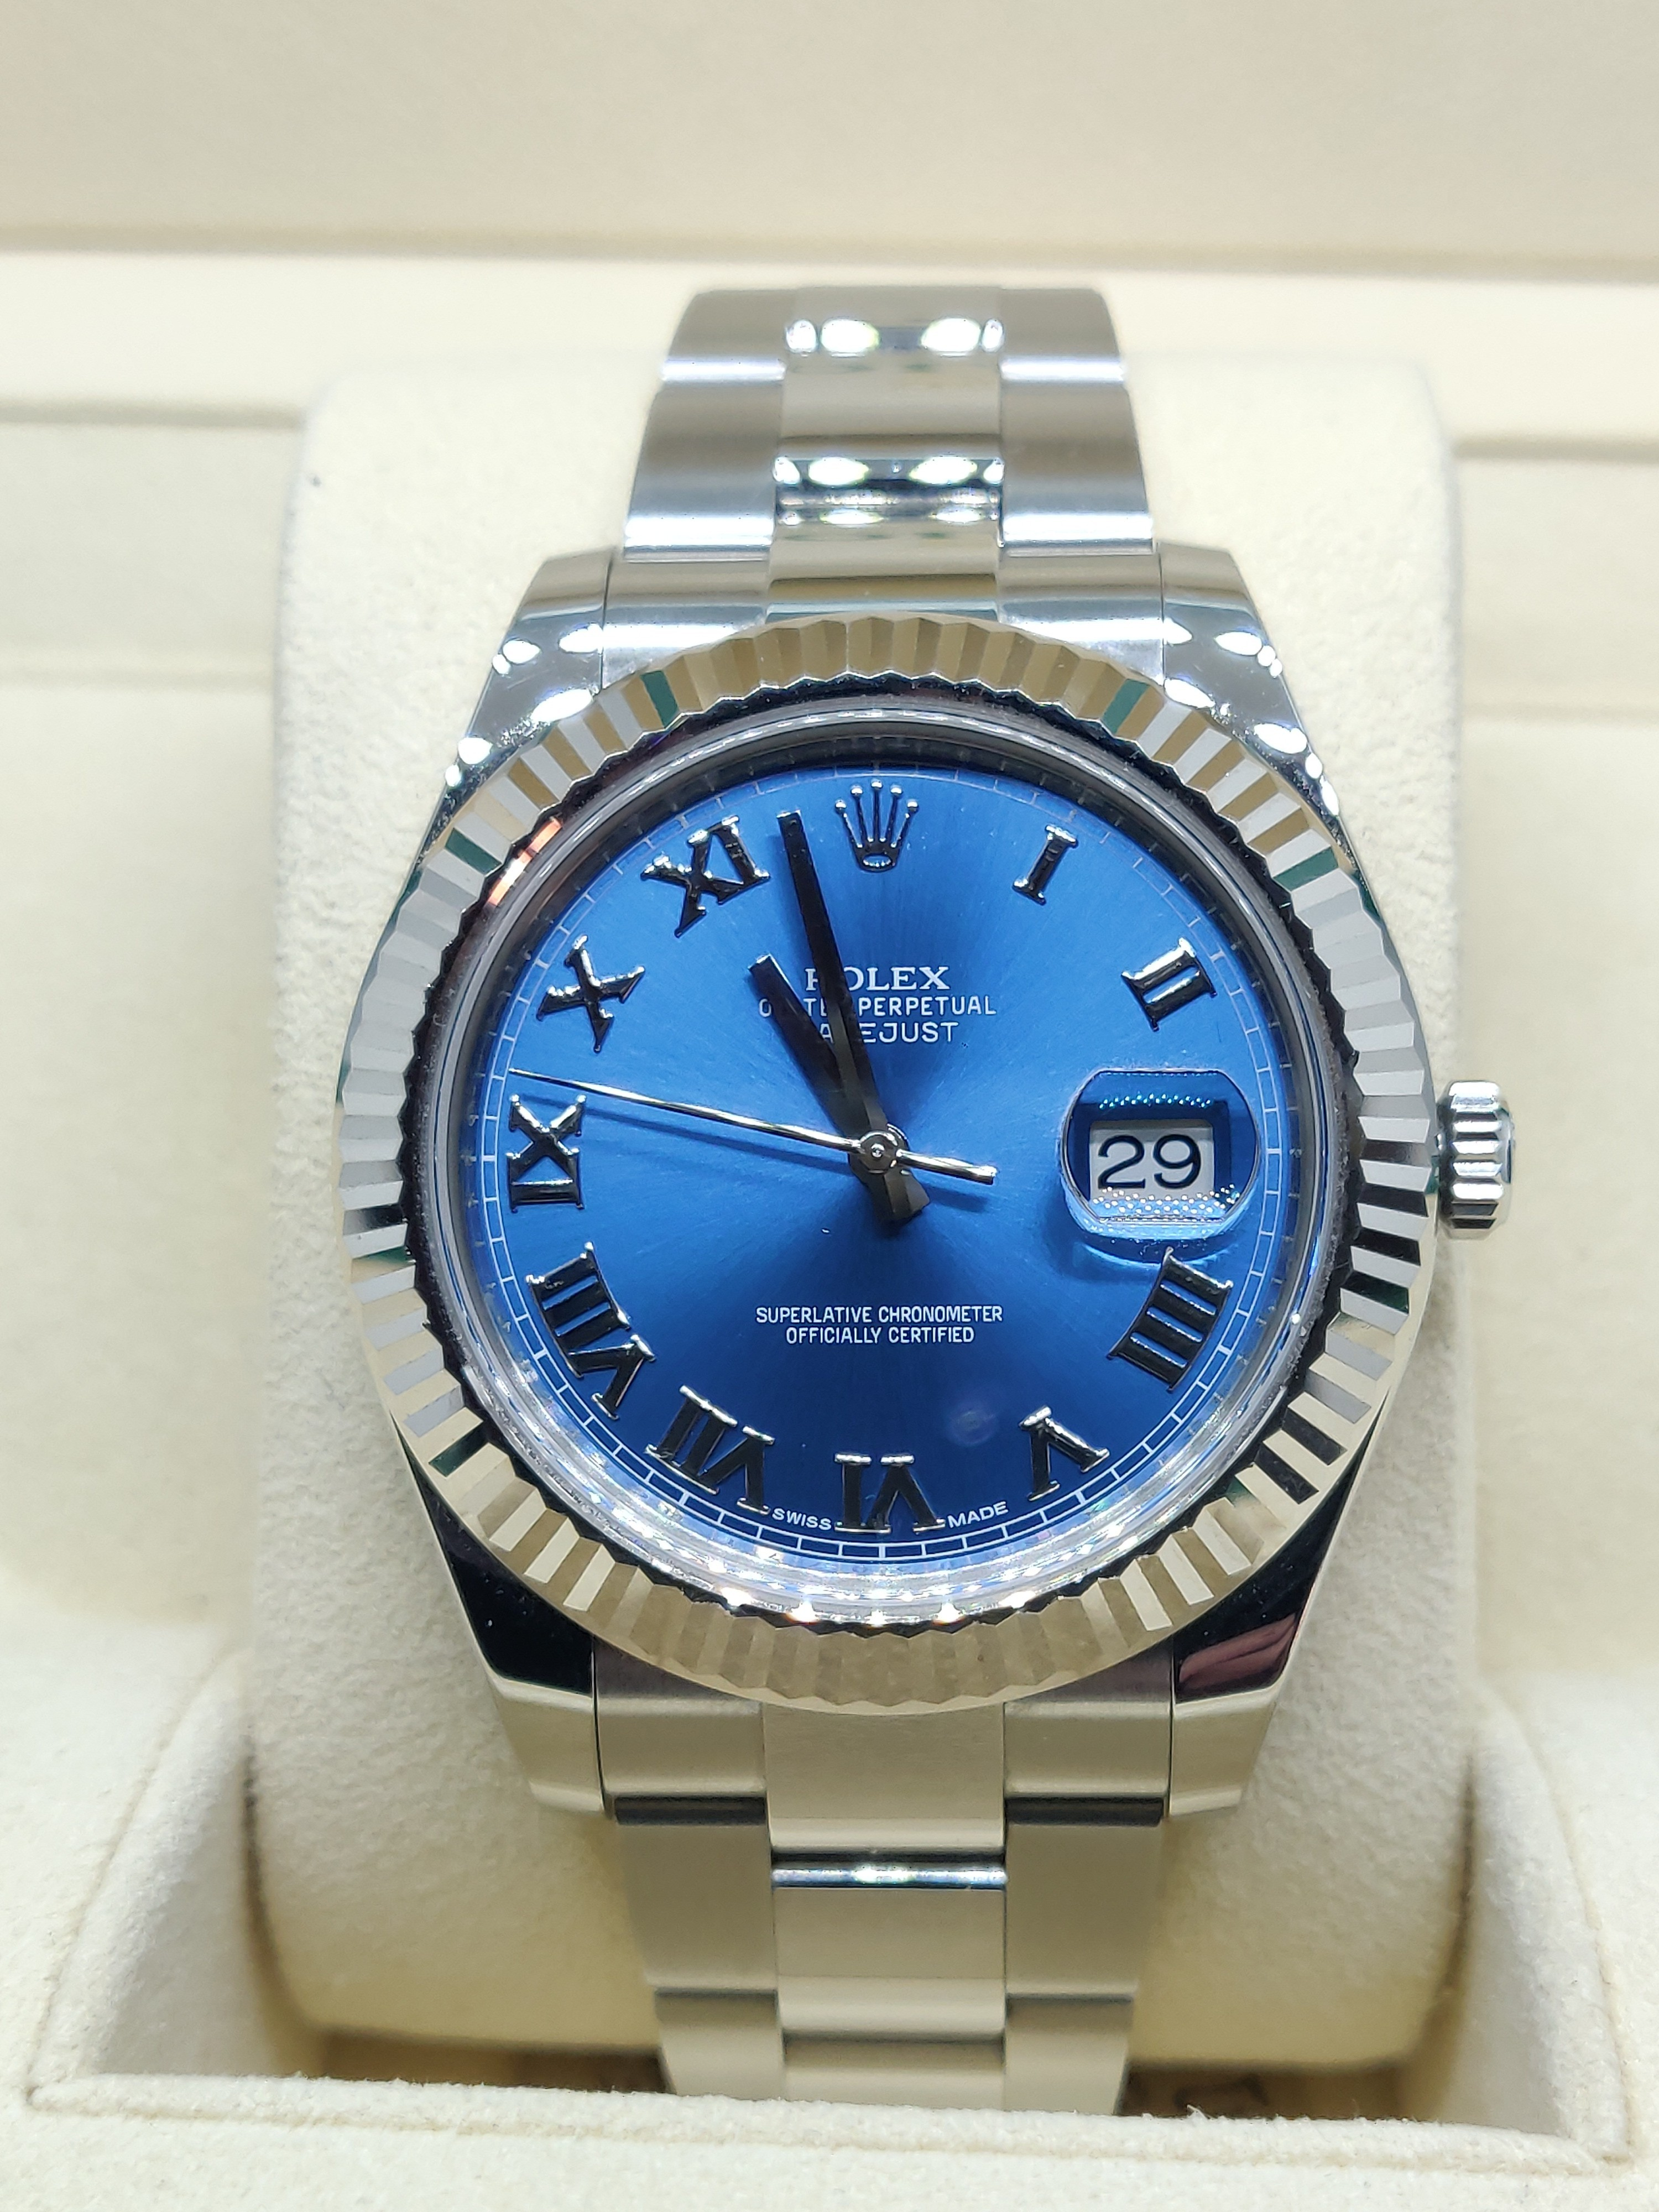 Rolex Datejust II with Blue Dial and Roman Numerals - 116334